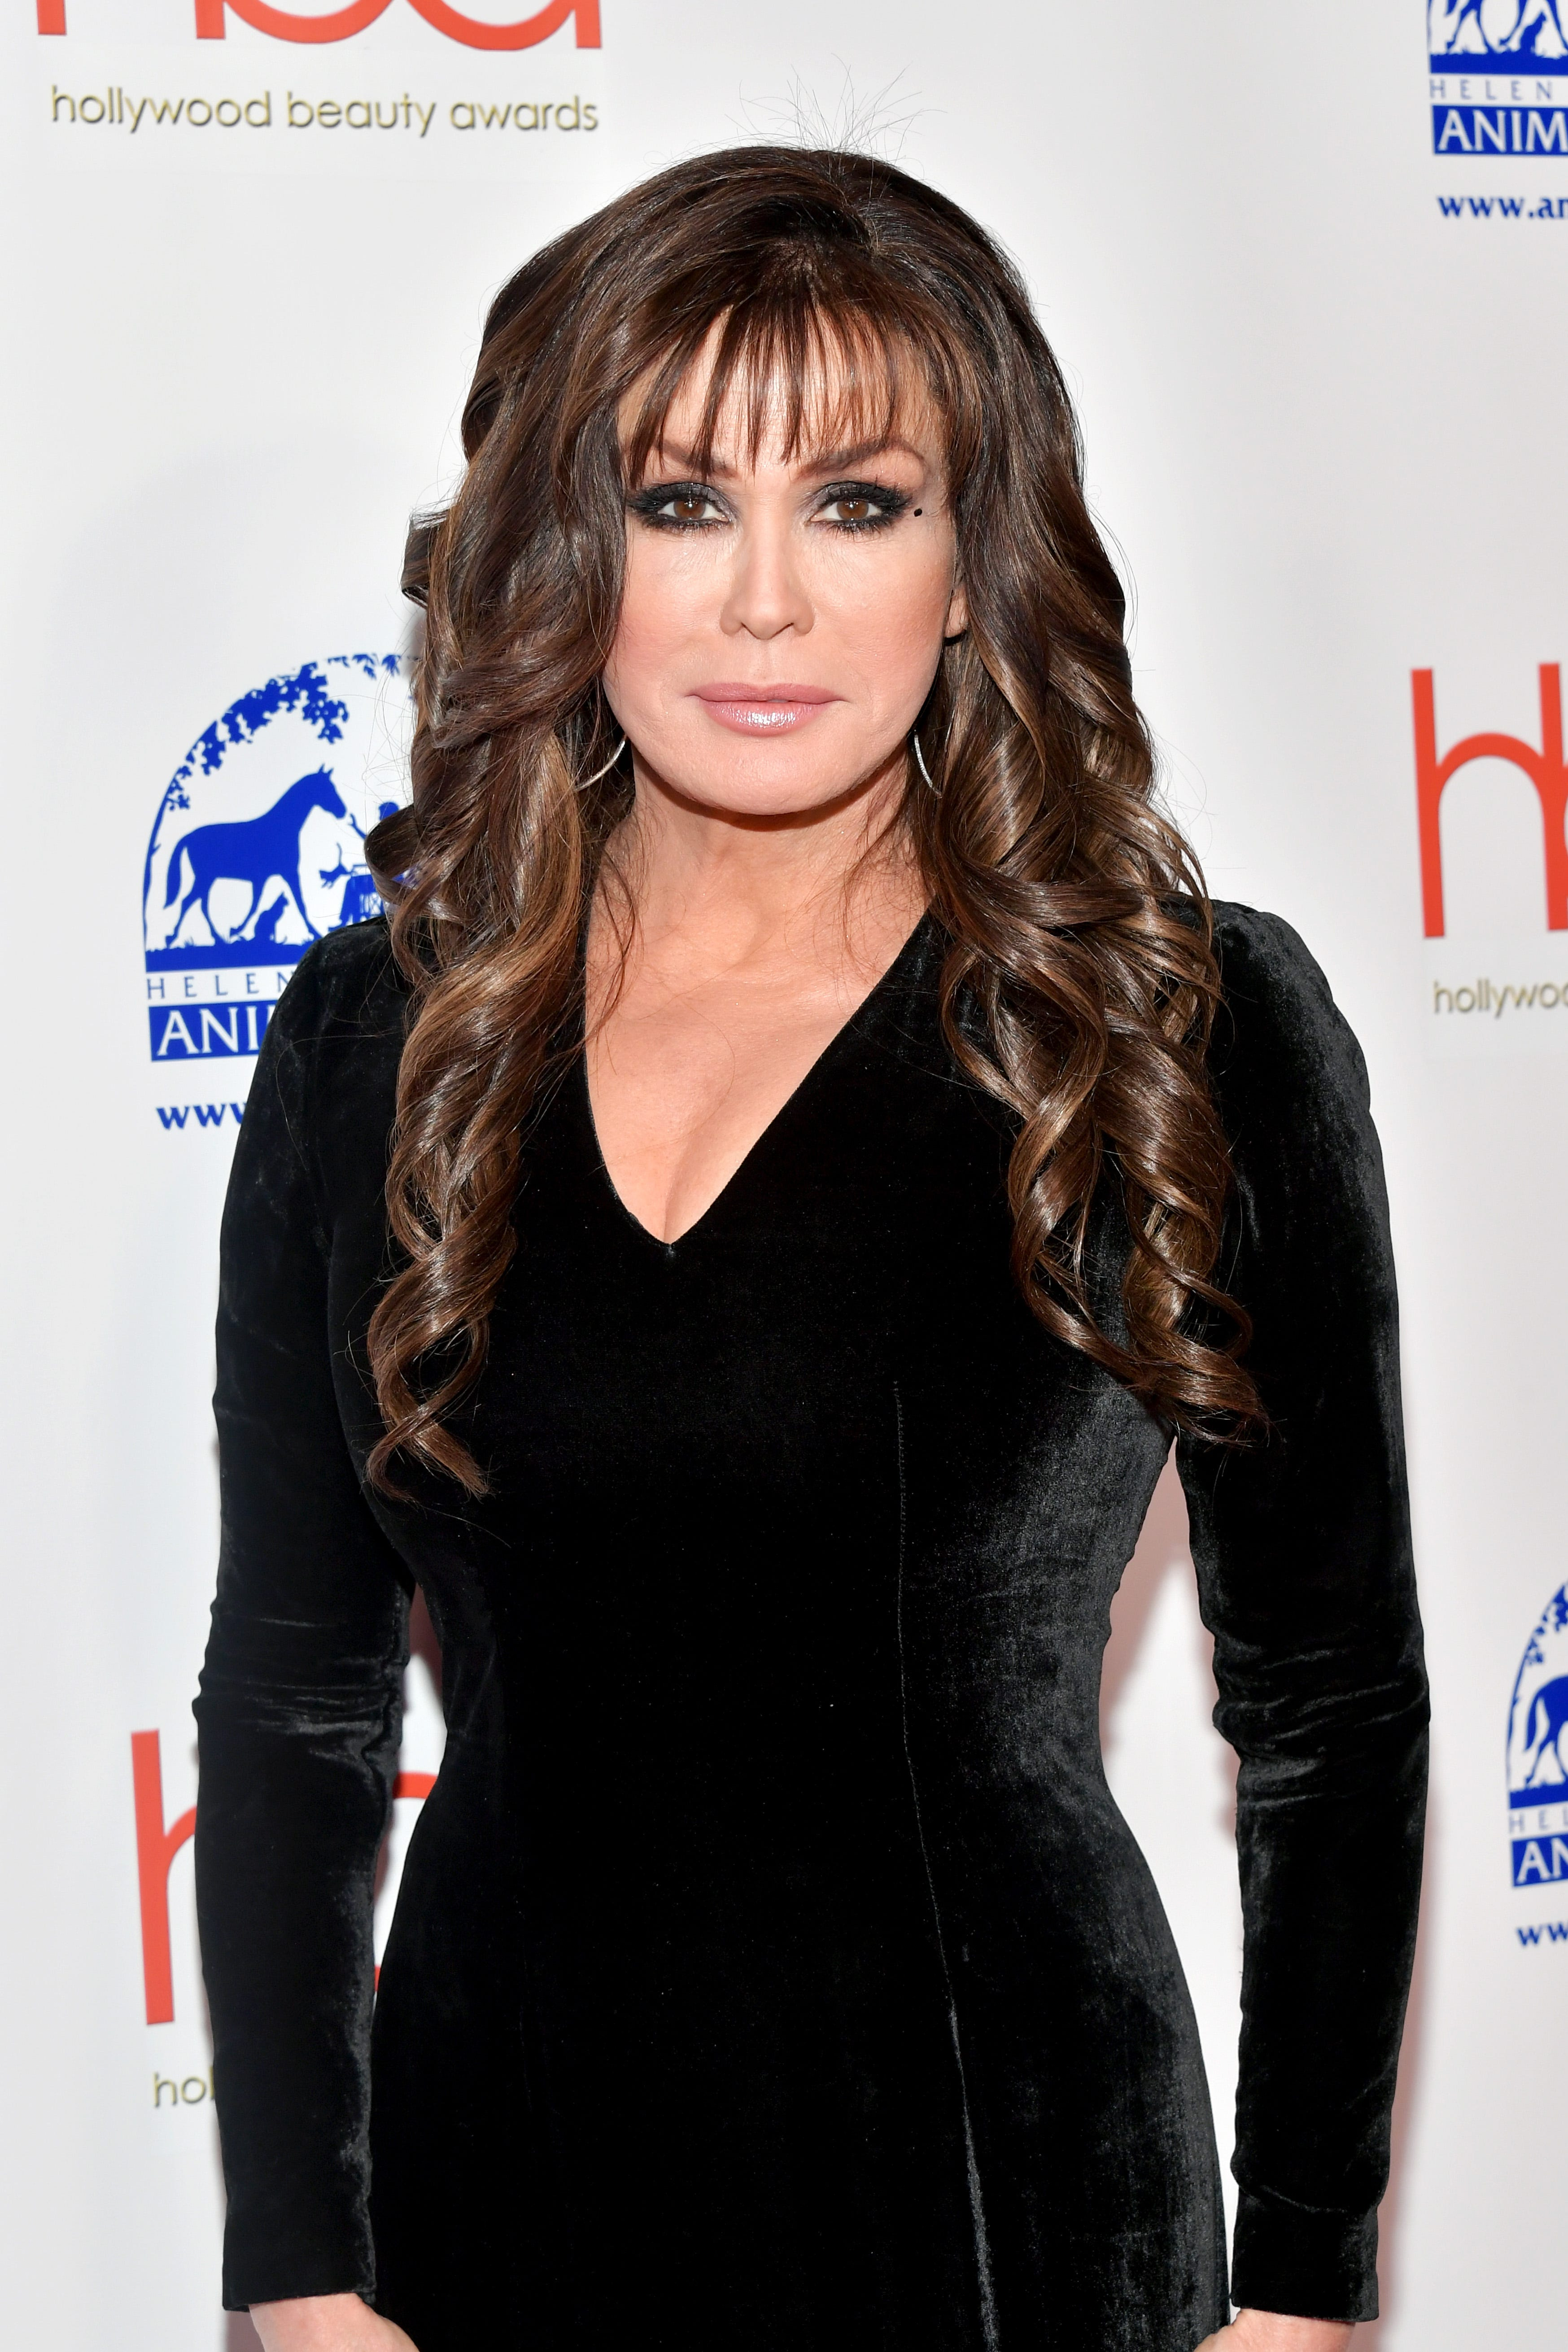 Marie Osmond reveals her late son was 'bullied very heavily,' received 'horrendous' texts